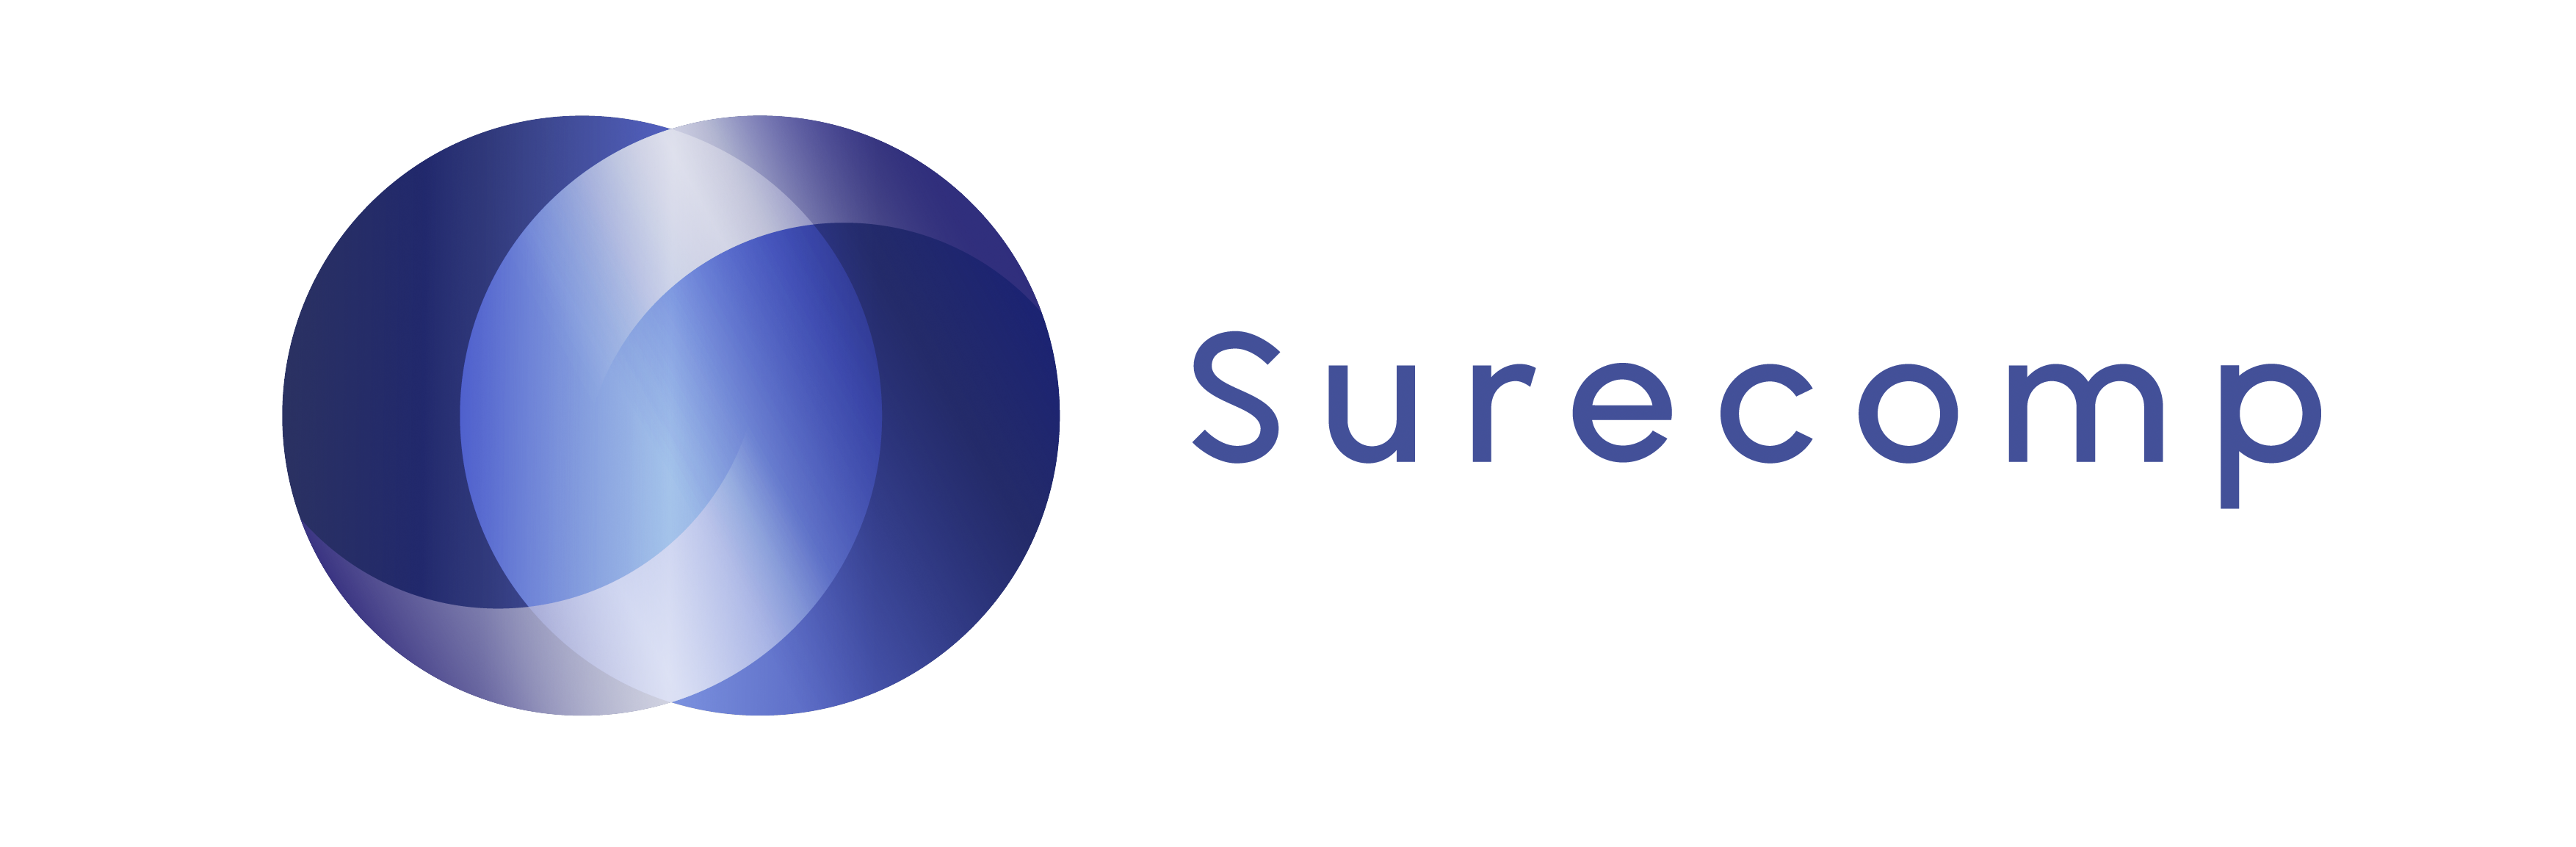 Surecomp Hires Enno-Burghard Weitzel as SVP, Strategy and Business Development